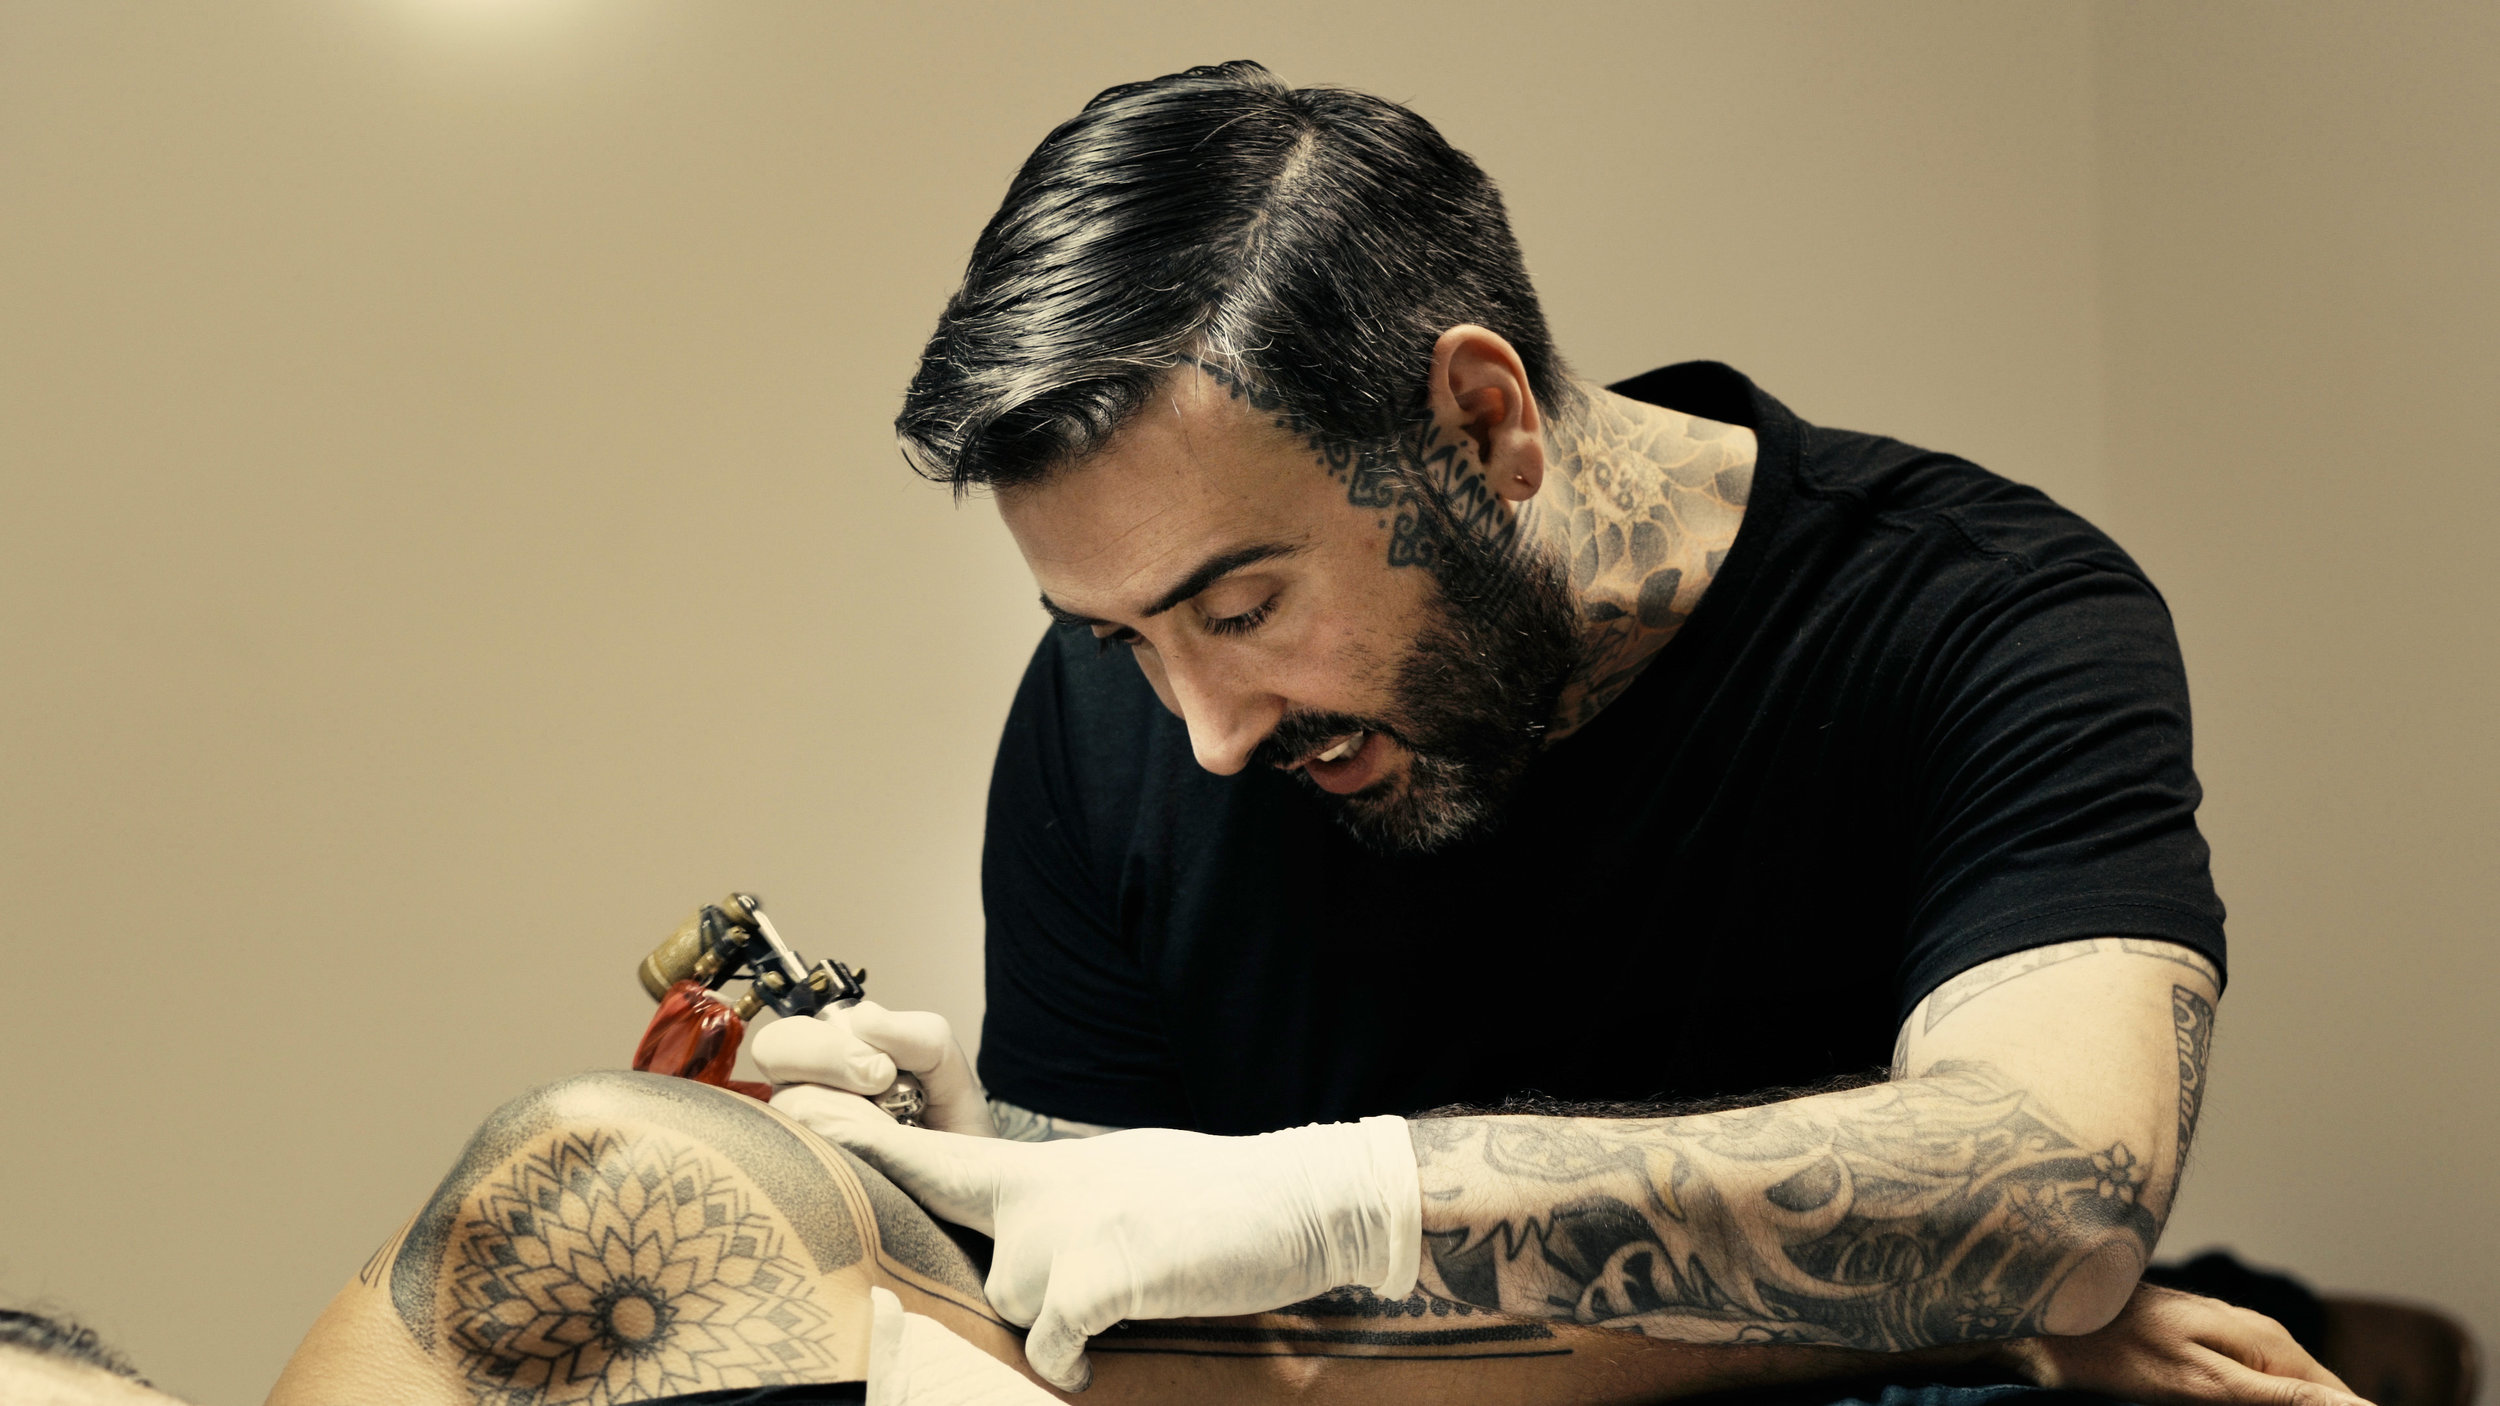 Alvaro Flores - Short DocumentaryMedia: VideoAlvaro is one of the most sought after Tattoo artists in Australia. He was a waiting list almost a year long and creates the most exquisite works of art on peoples bodies. I made this short documentary to explore where his inspiration came from, what drove him to pursue such a thing and to understand what it is like to create a permanent work of art on a persons body.